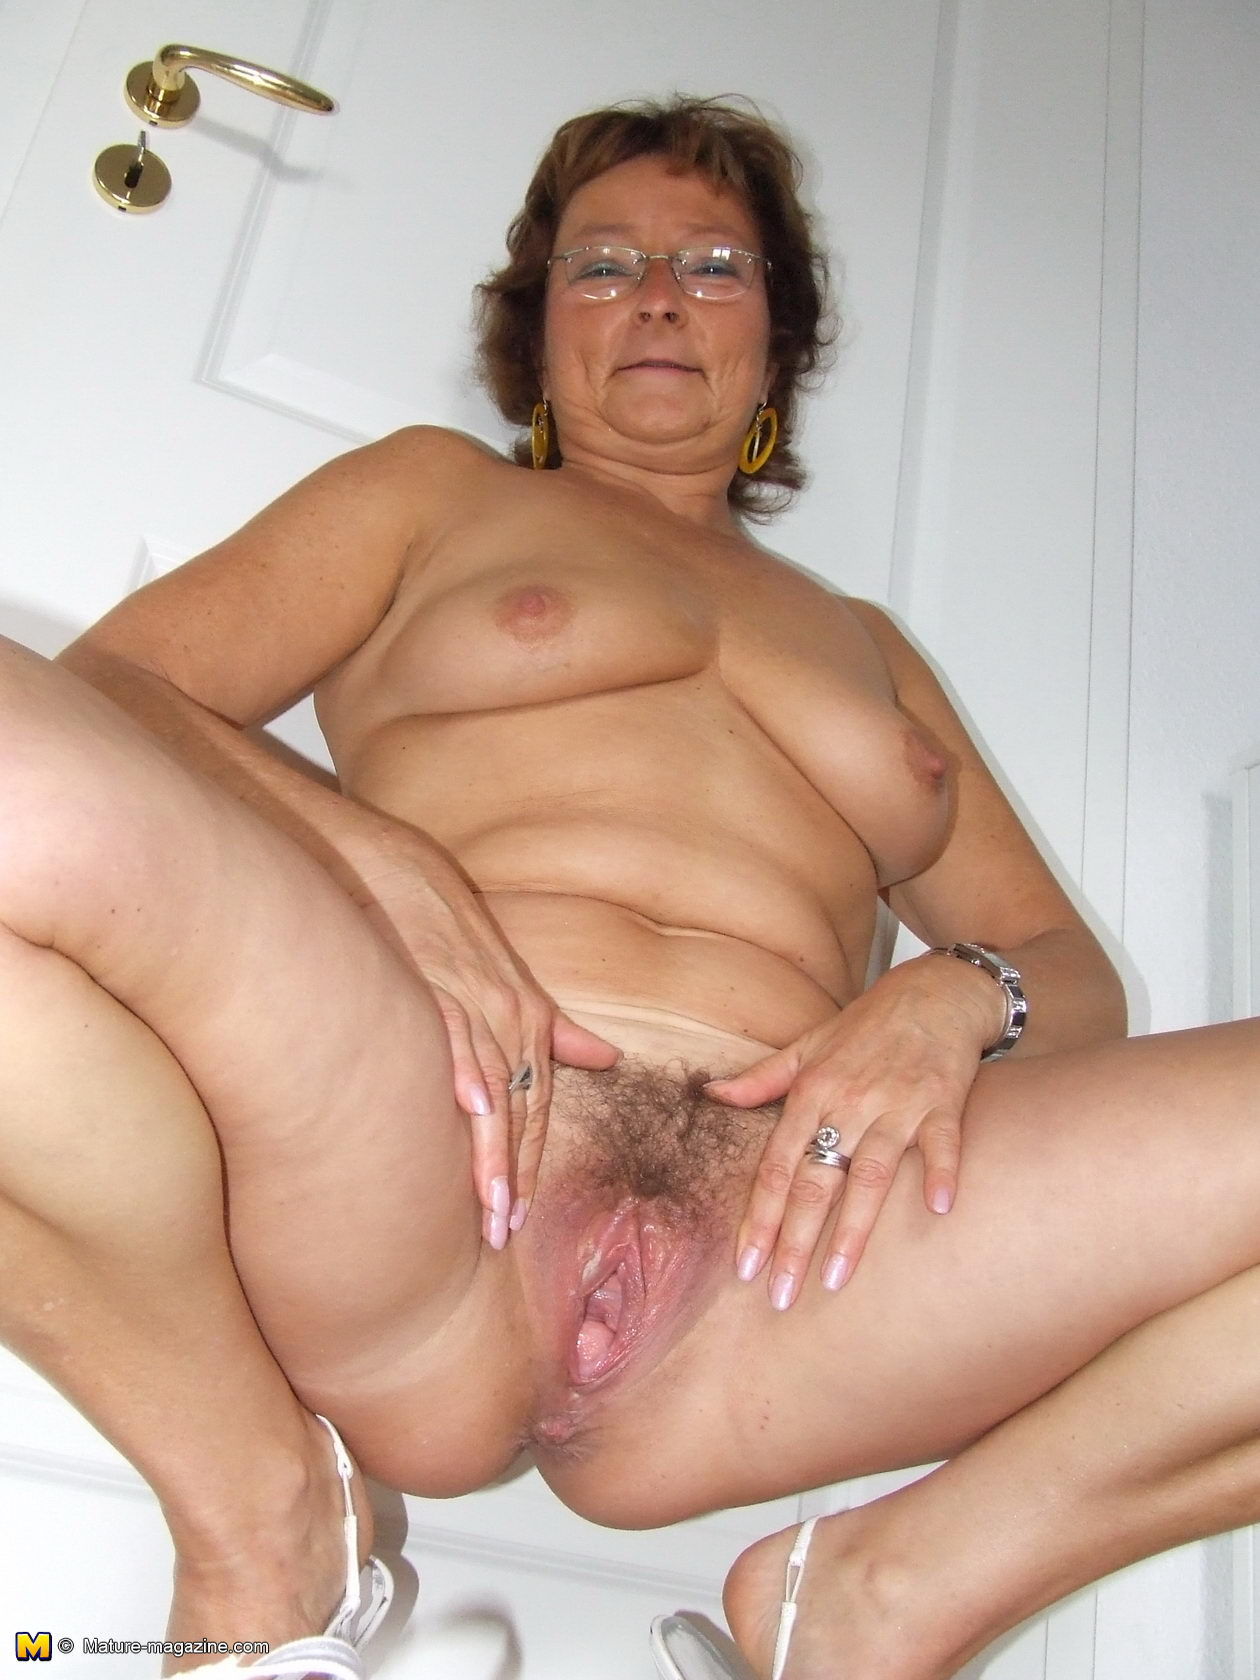 hairy amateur housewife playing with her toy - grannypornpics